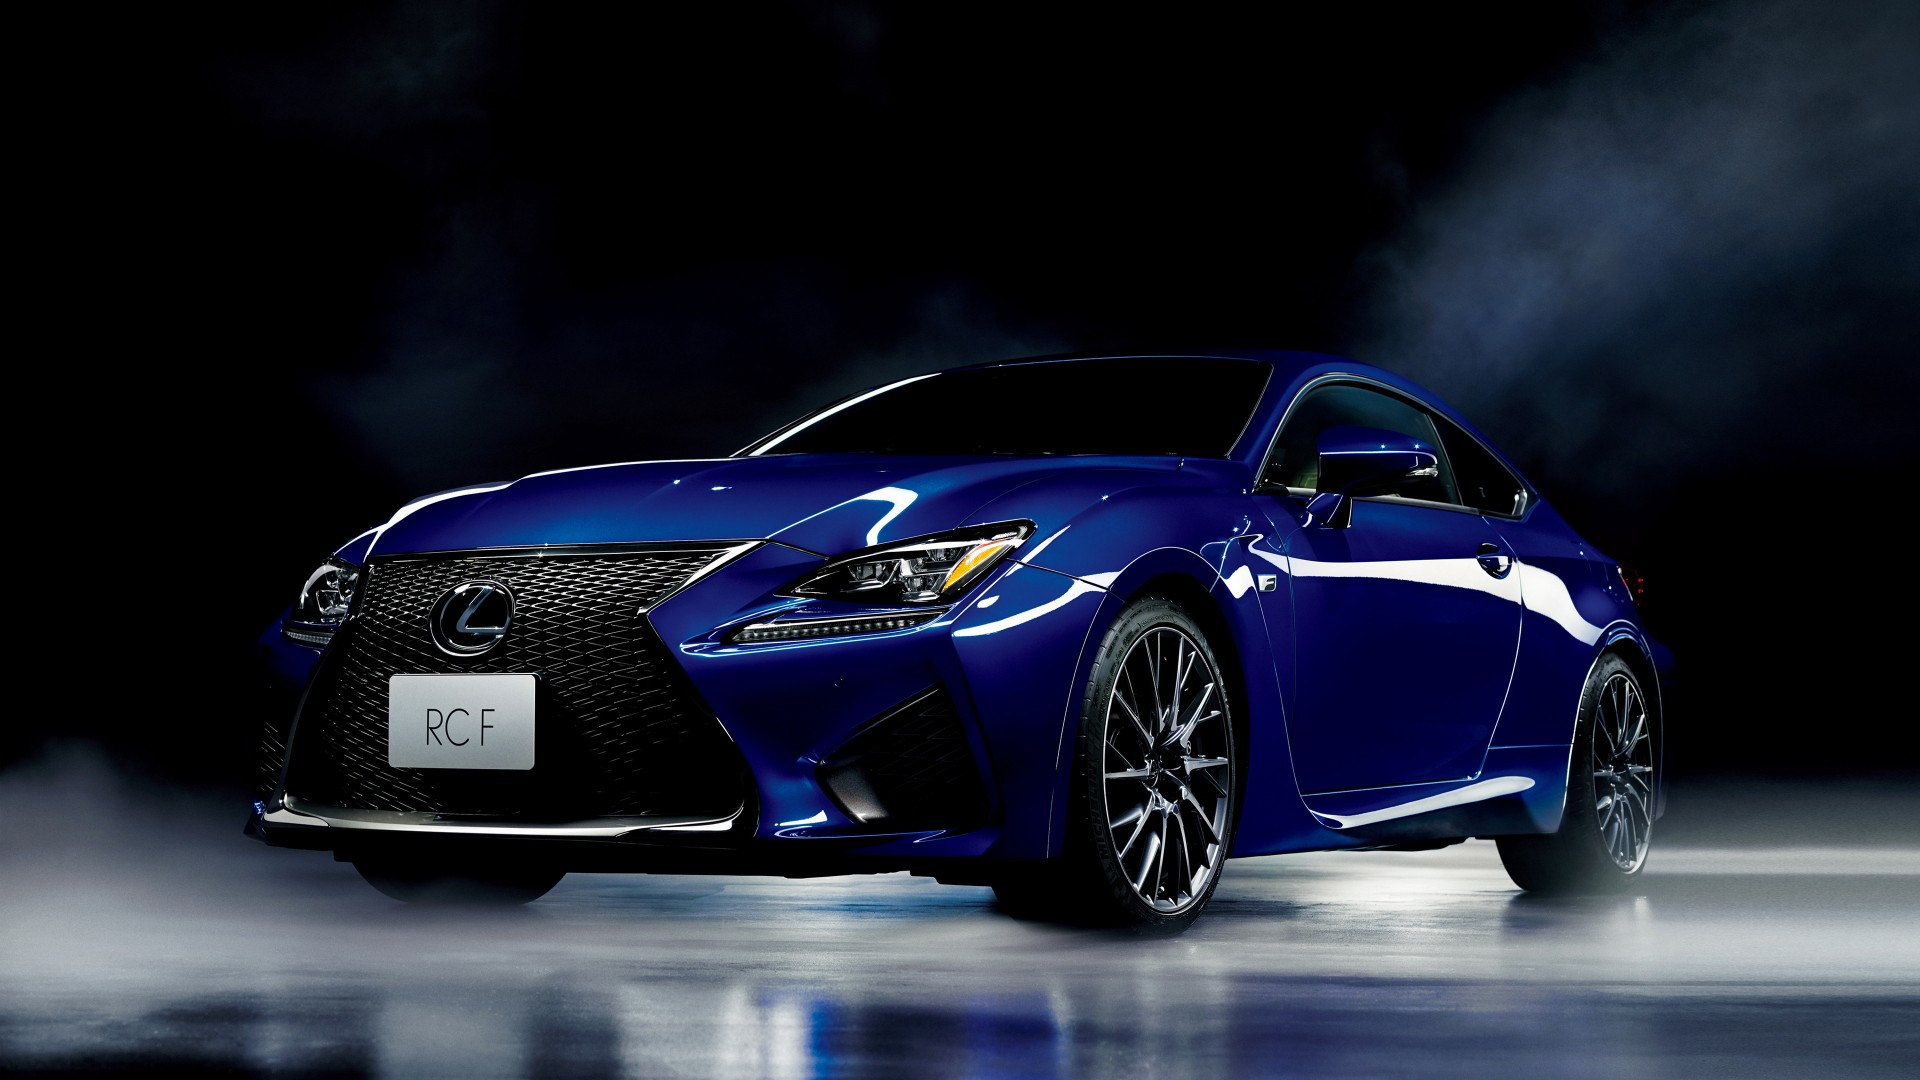 Car Wallpaper Hd Iphone 4 2016 Lexus Rc F Sport Coupe 4k Wallpaper Hd Car